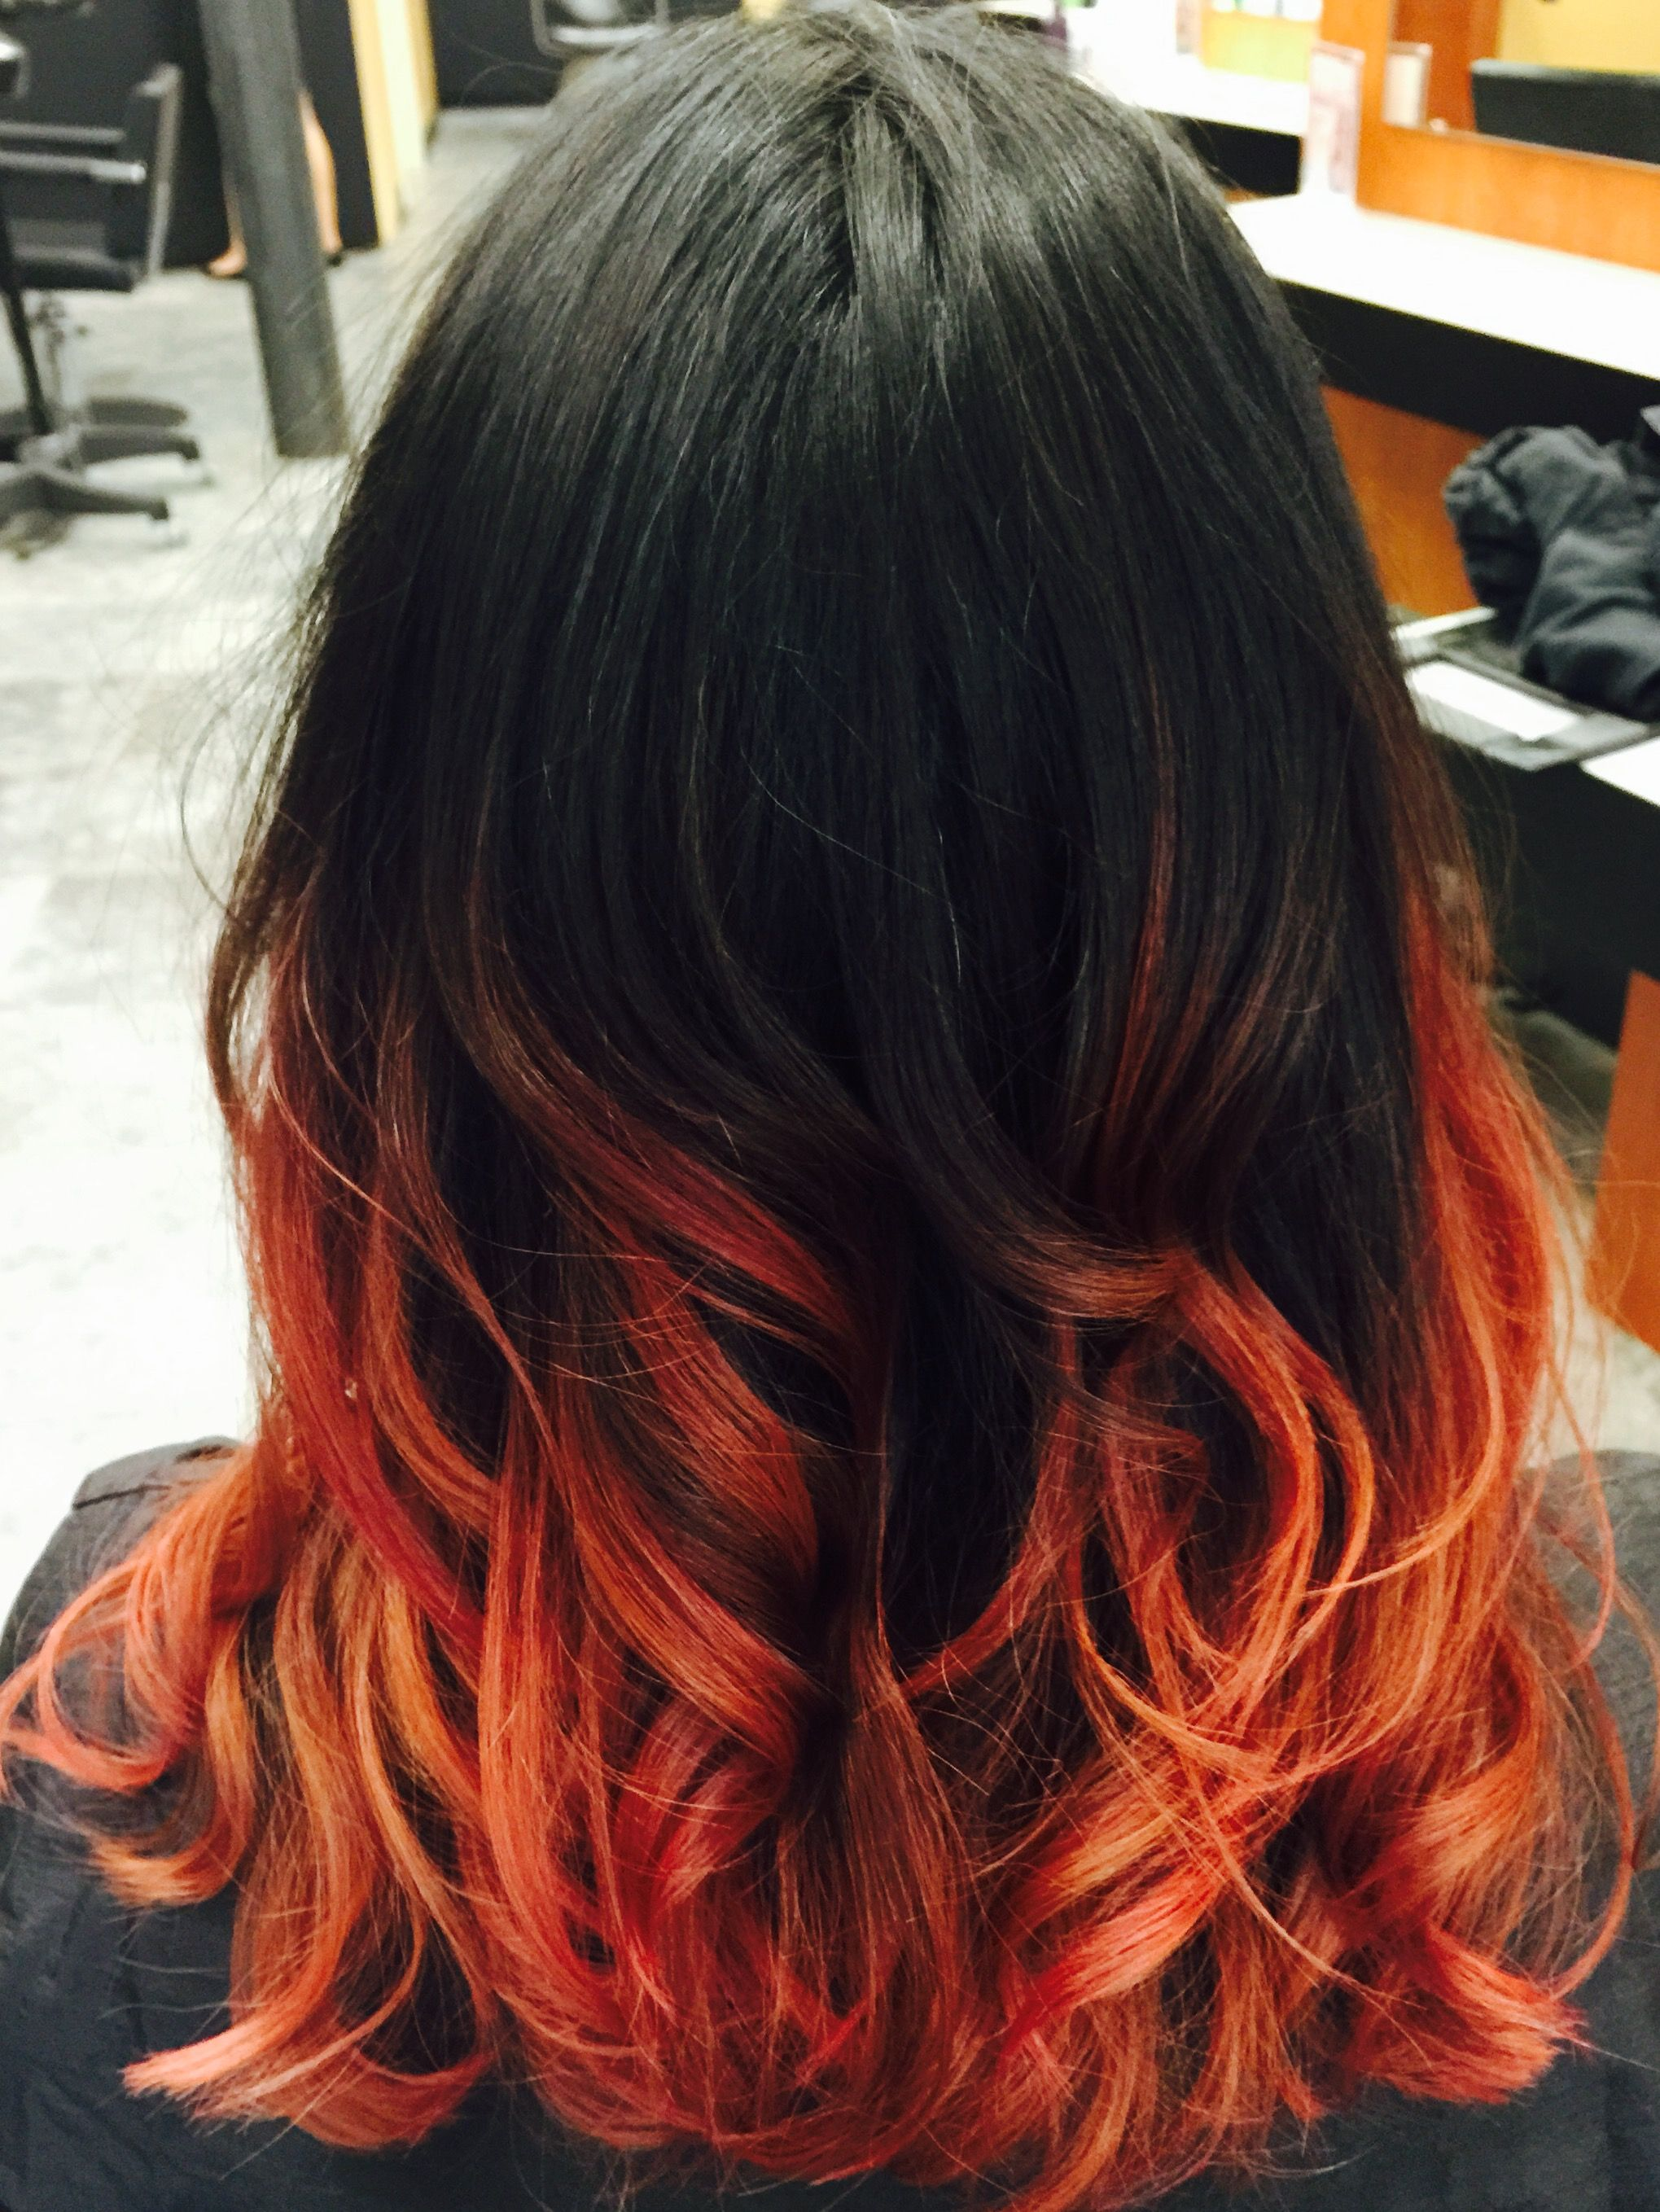 Apollymi S Hair Is A Mix Between All Ranges Reds Yellows Blacks Oranges And Occassionally White Fire Hair Orange Ombre Hair Fire Ombre Hair